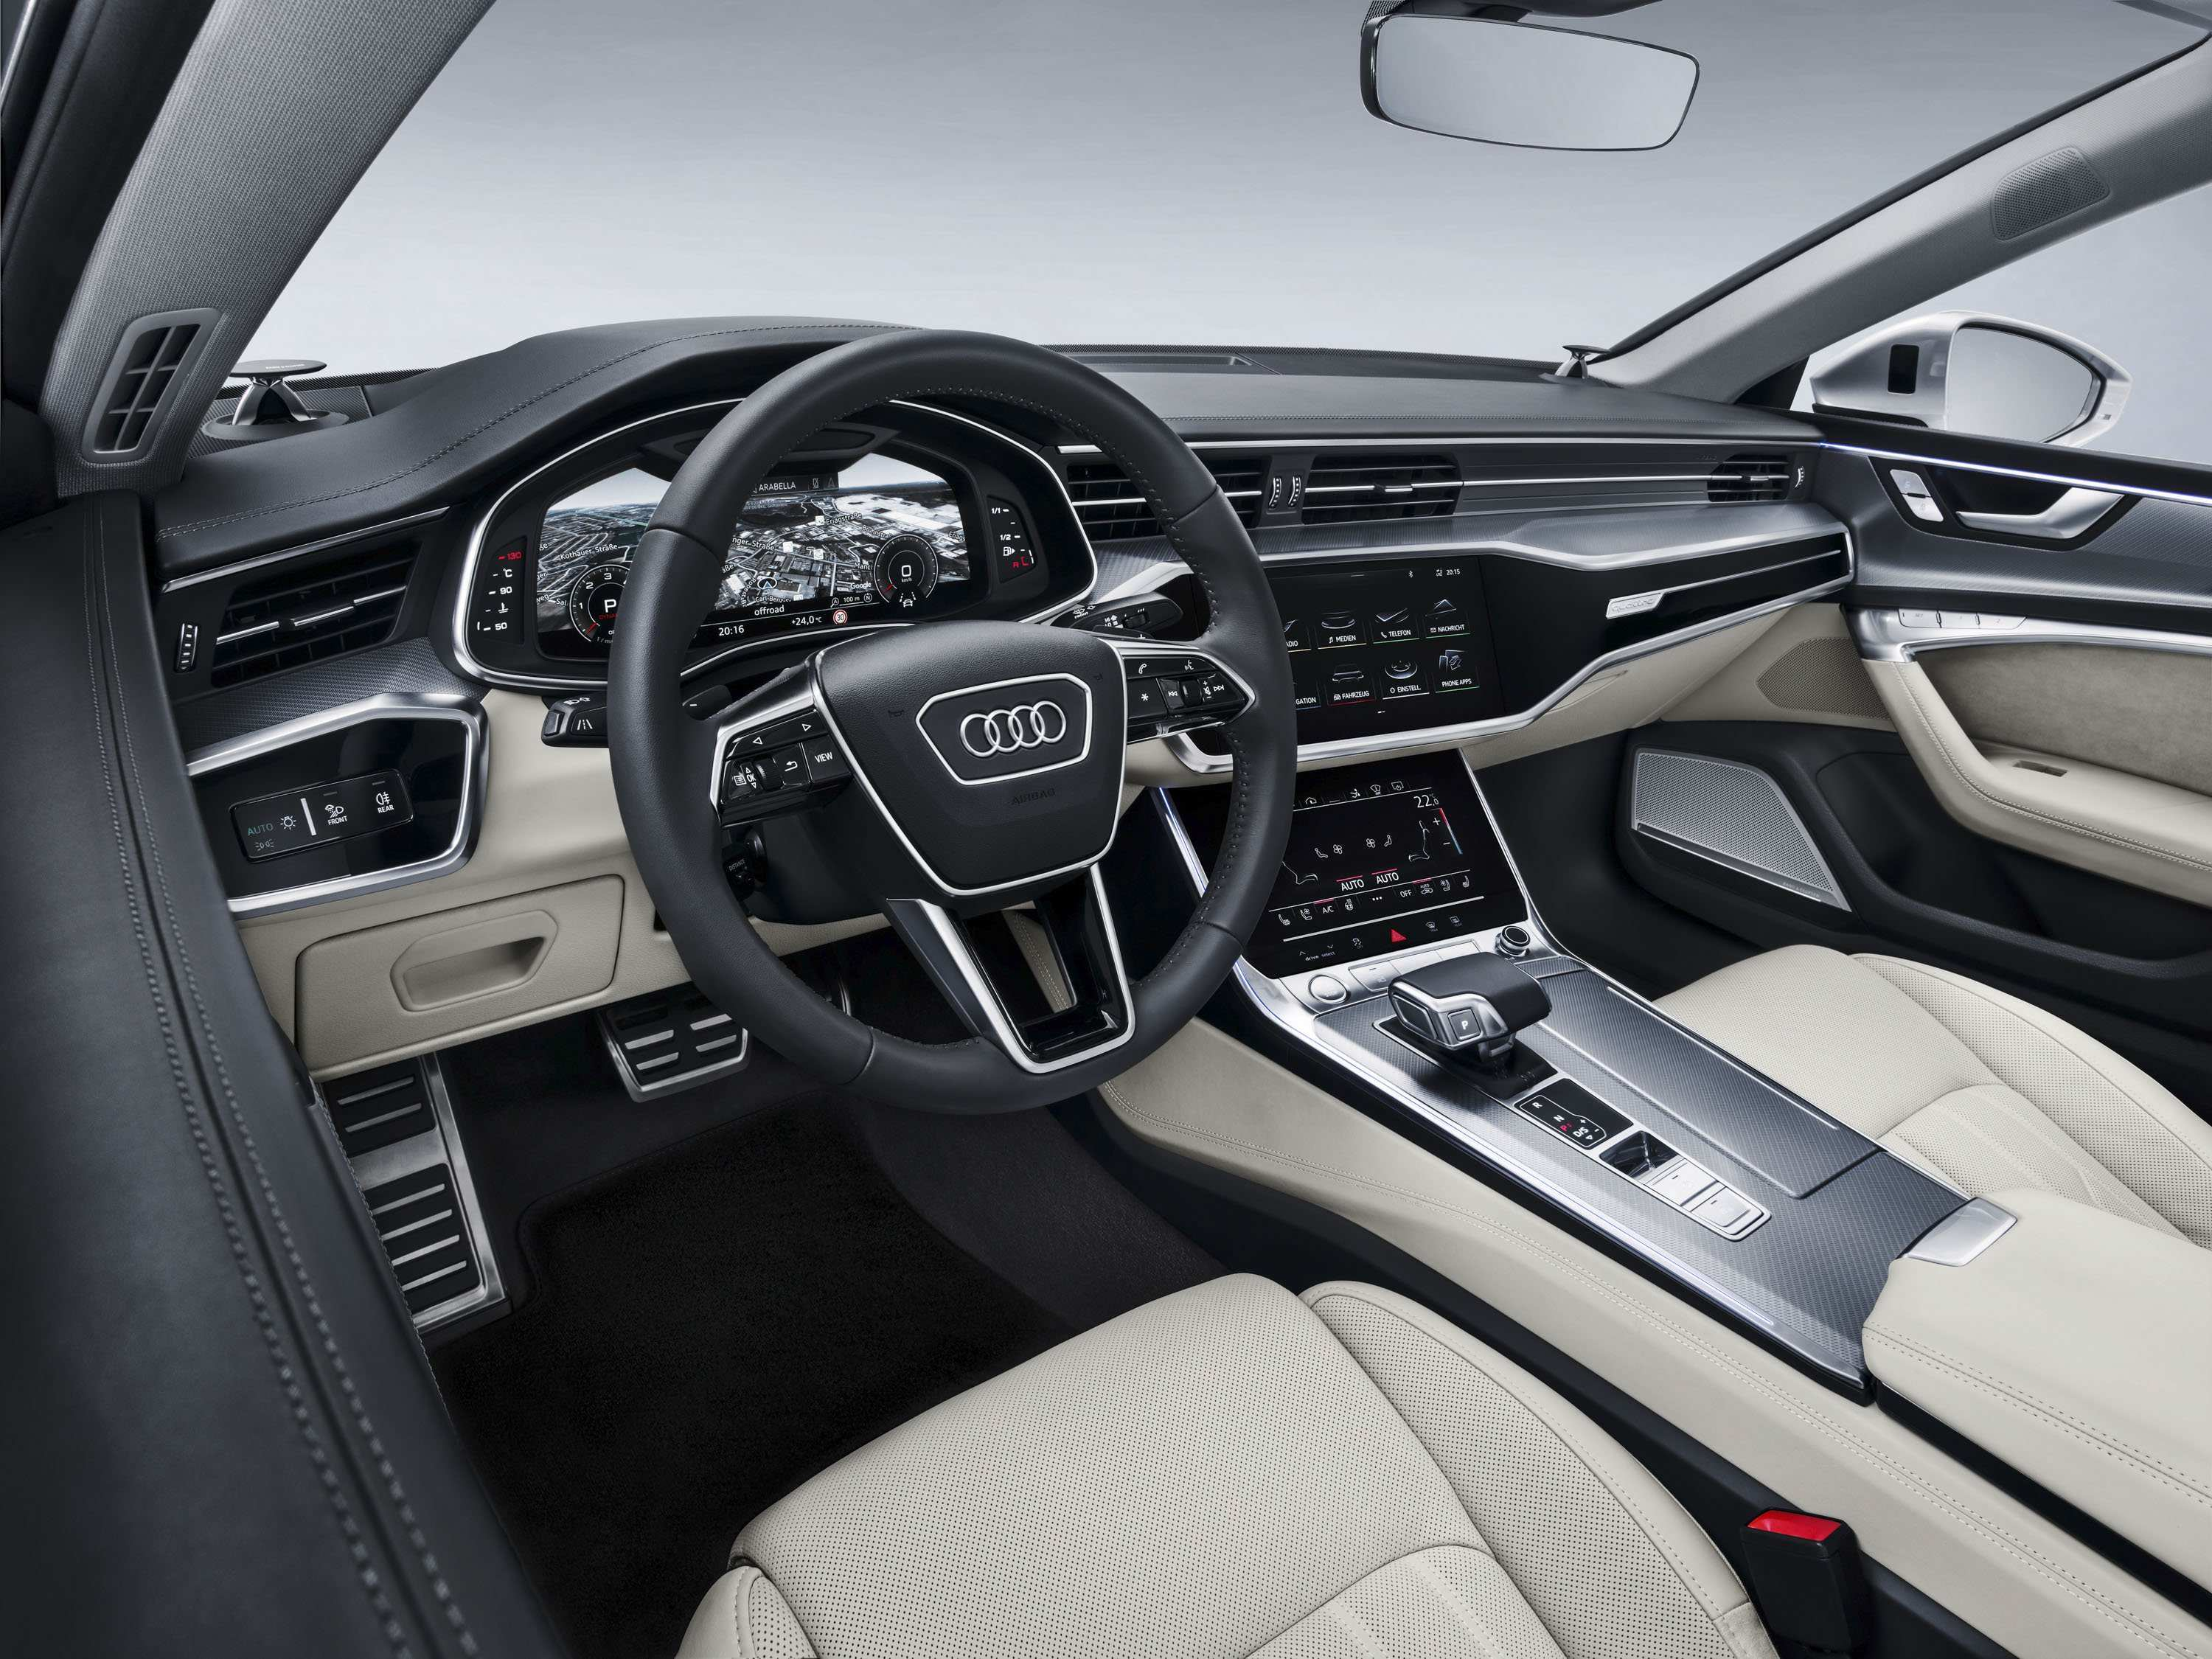 92 Great Best New S7 Audi 2019 Interior Pictures for Best New S7 Audi 2019 Interior